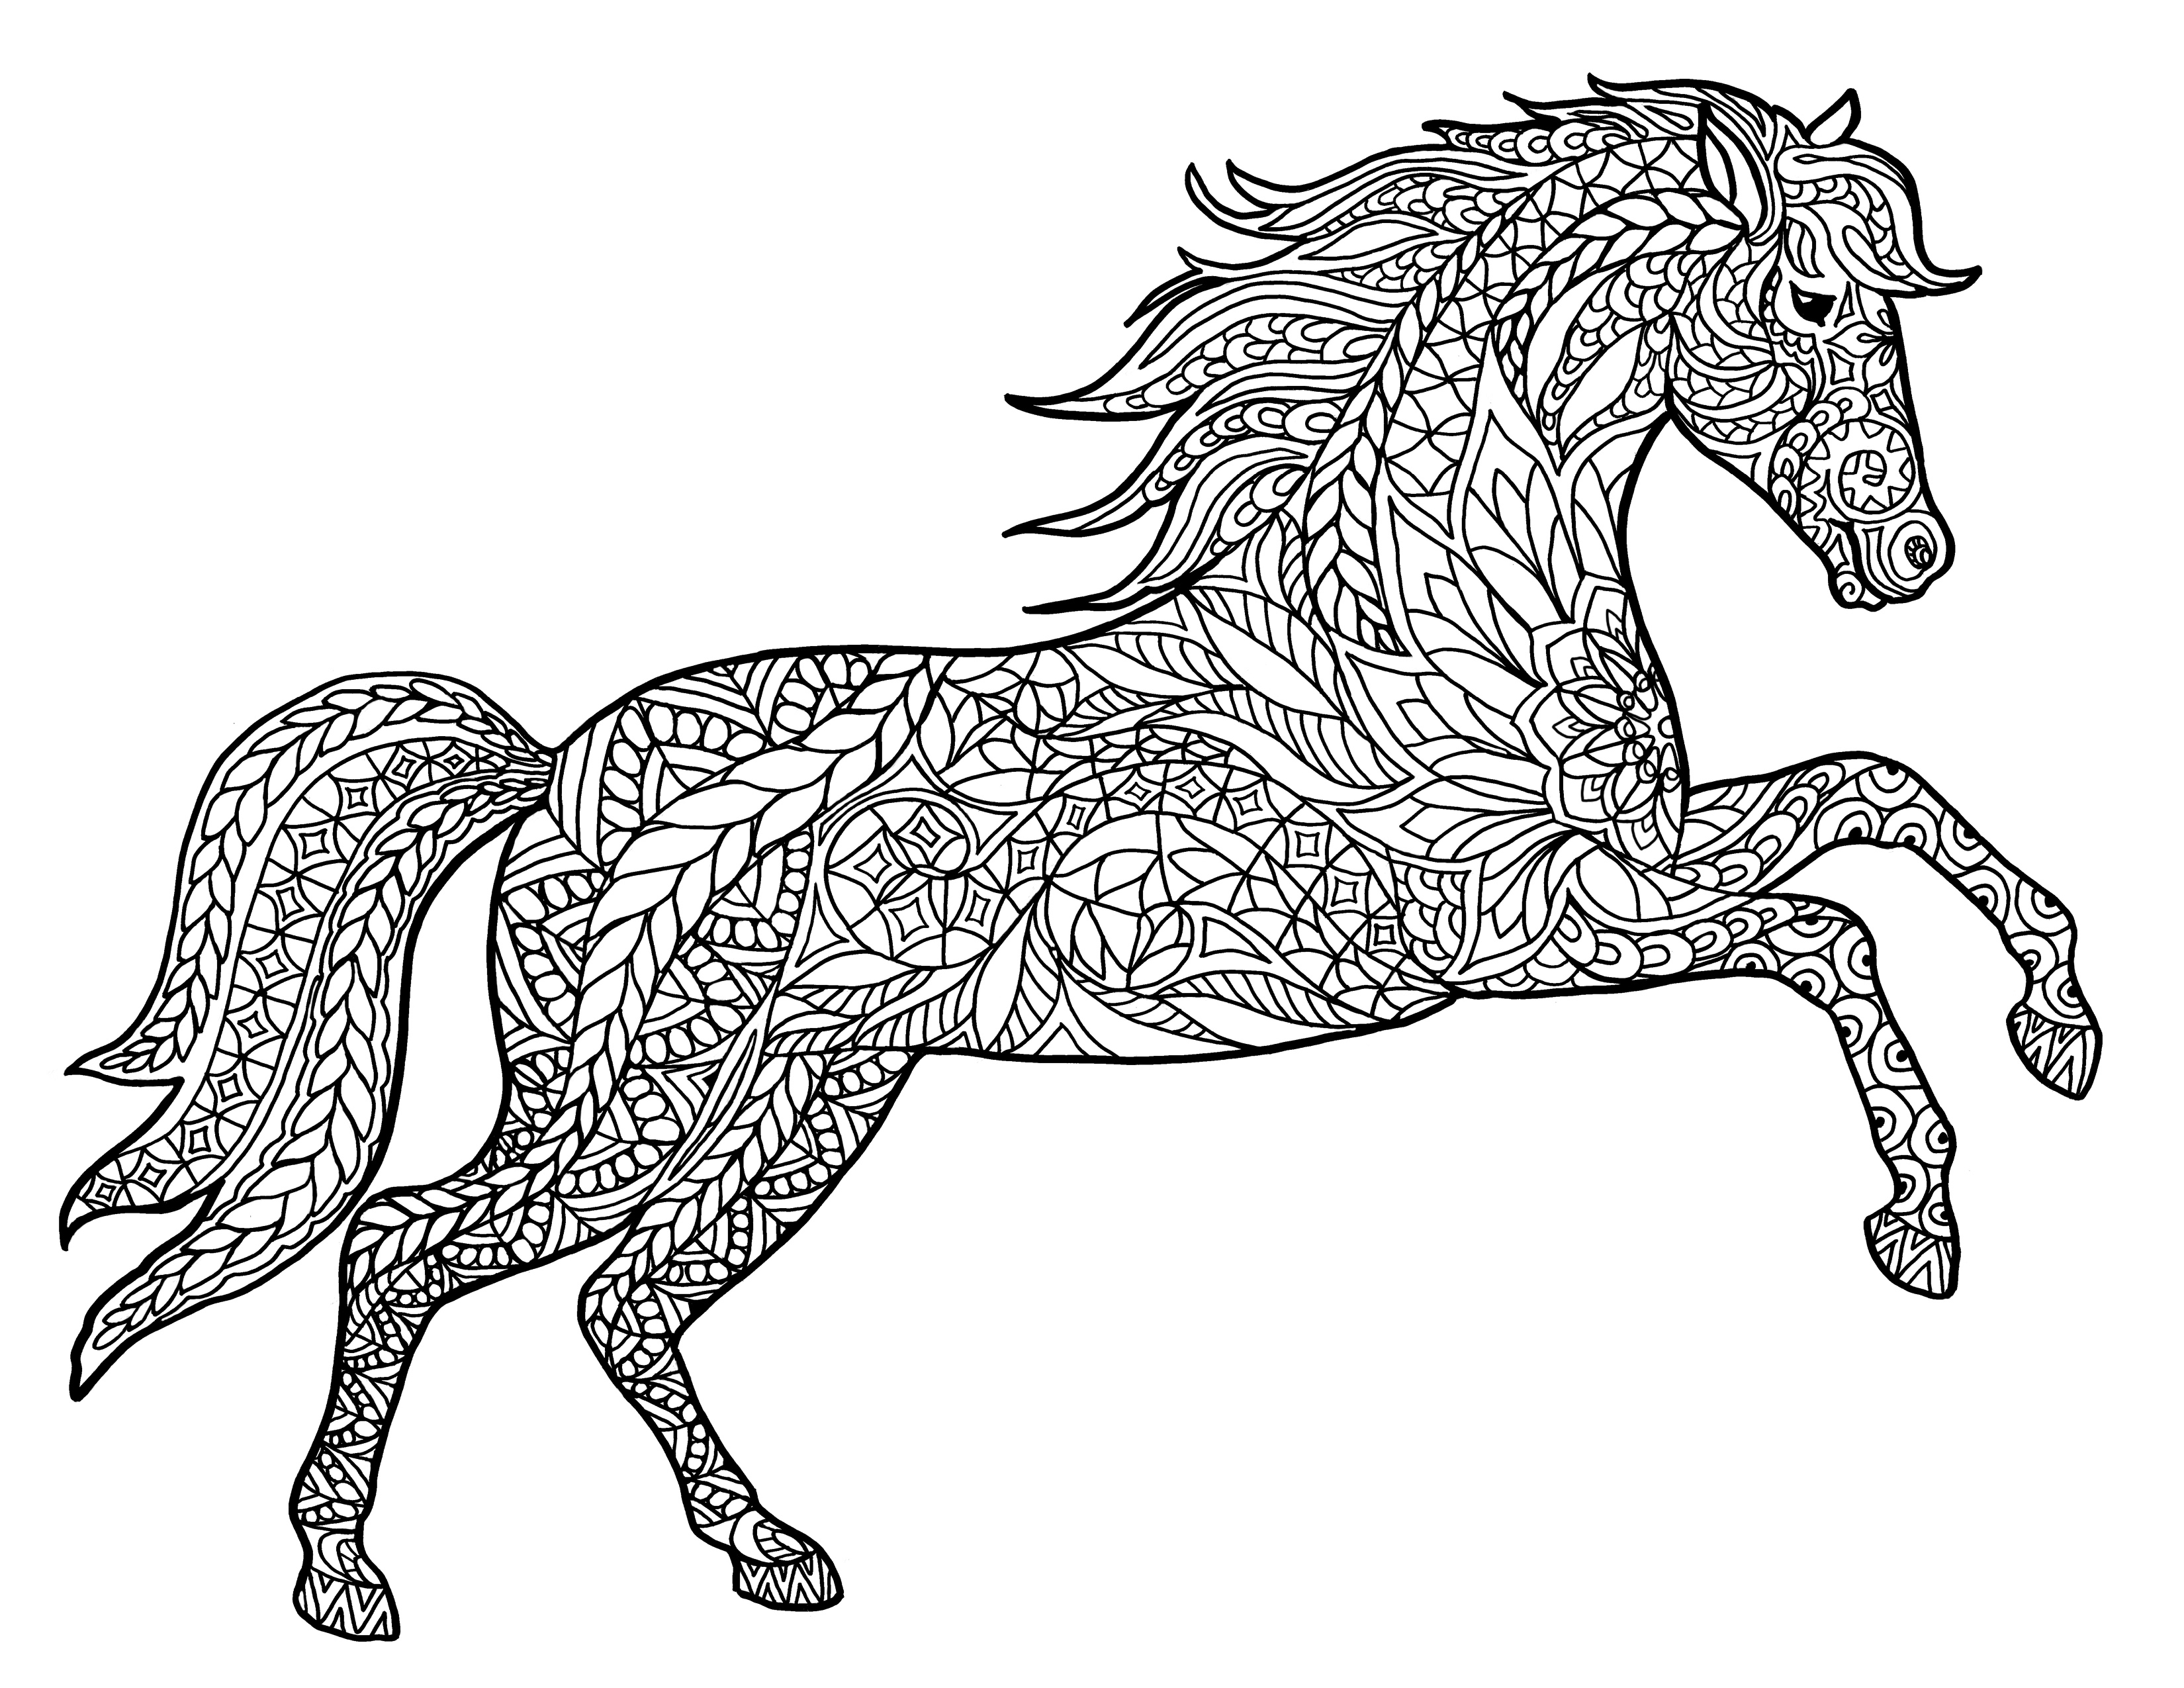 www coloring pages of animals animal coloring pages for adults best coloring pages for animals of pages www coloring